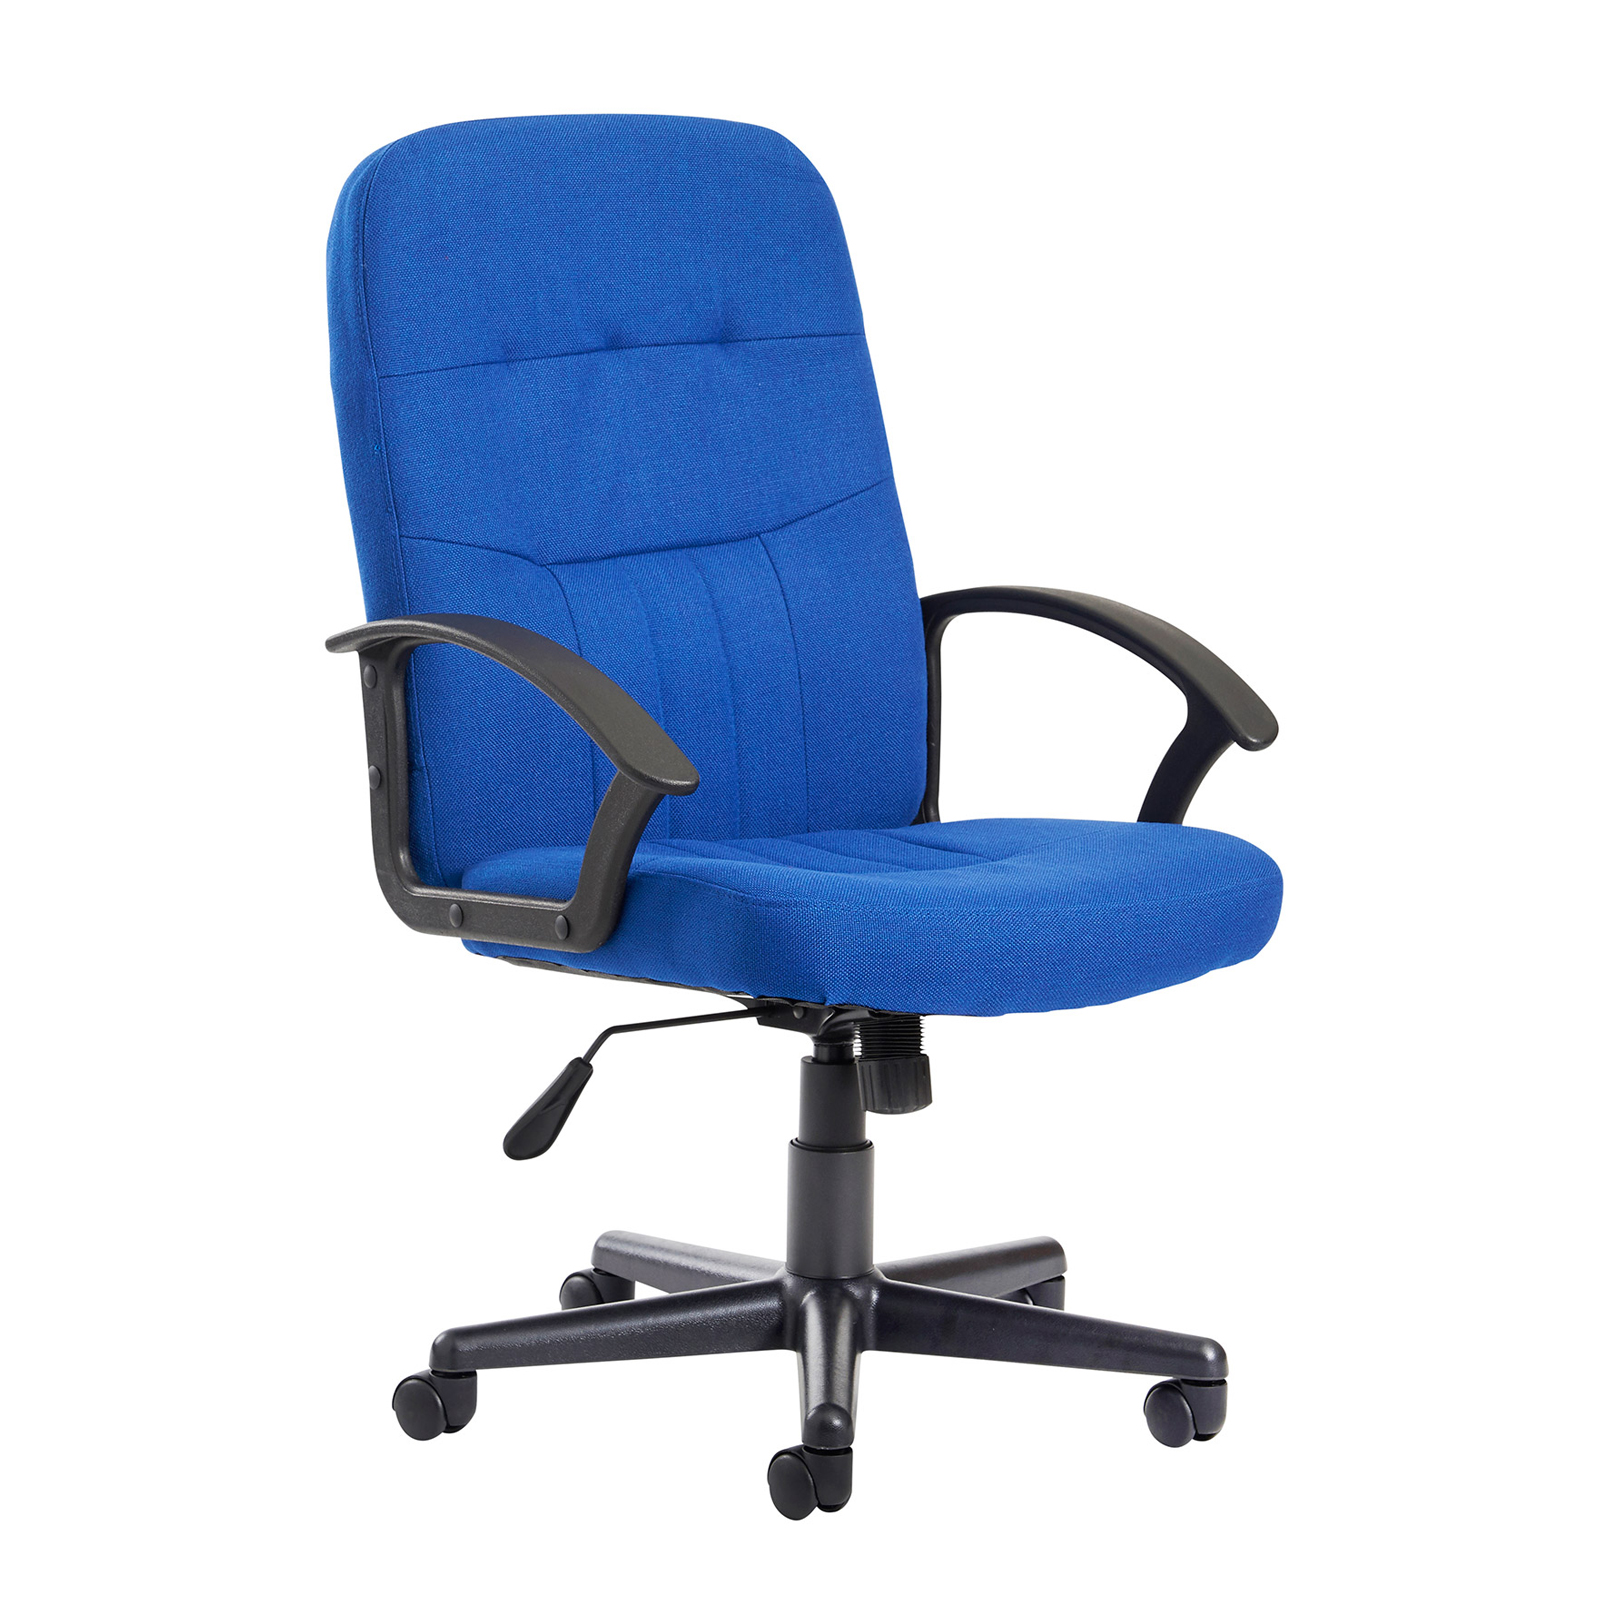 Desk Chairs Cavalier fabric managers chair